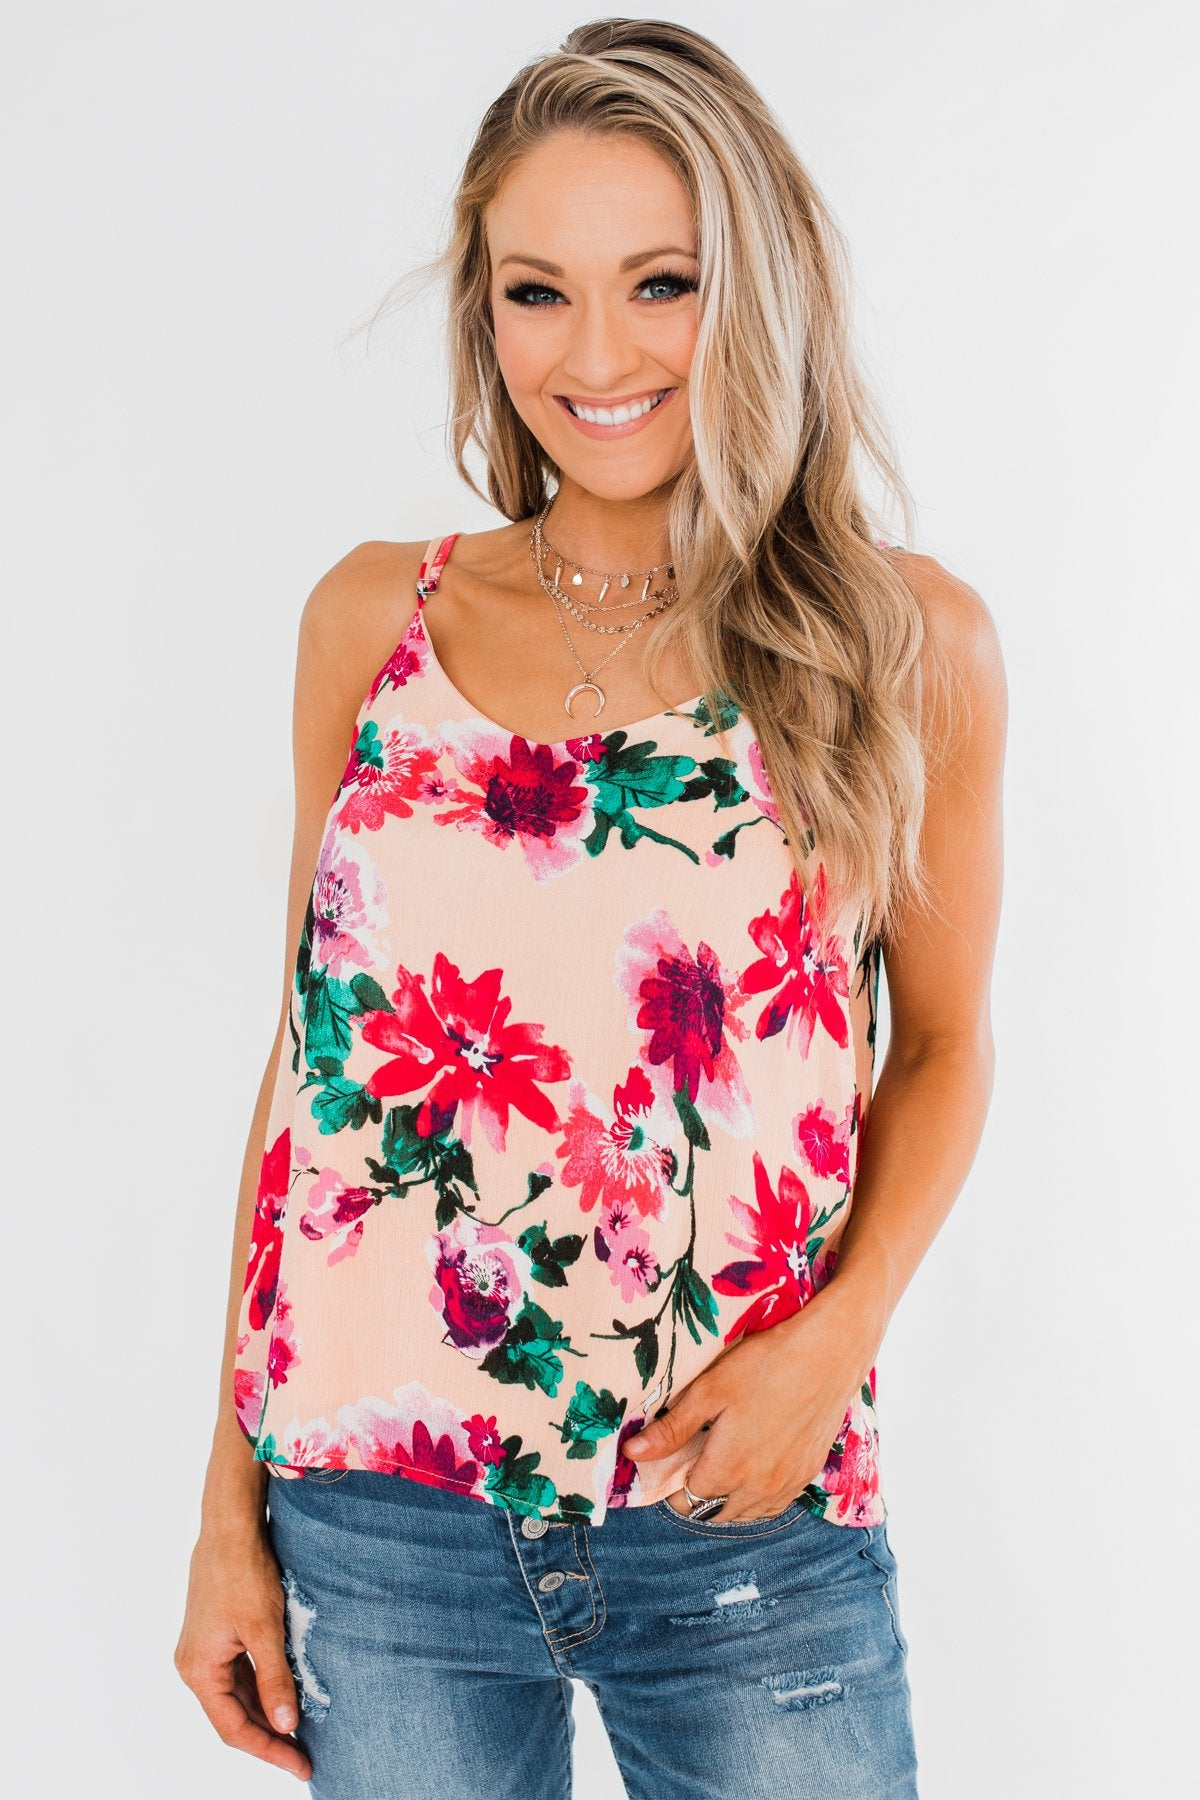 Always A Good Time Floral Tank Top- Peach